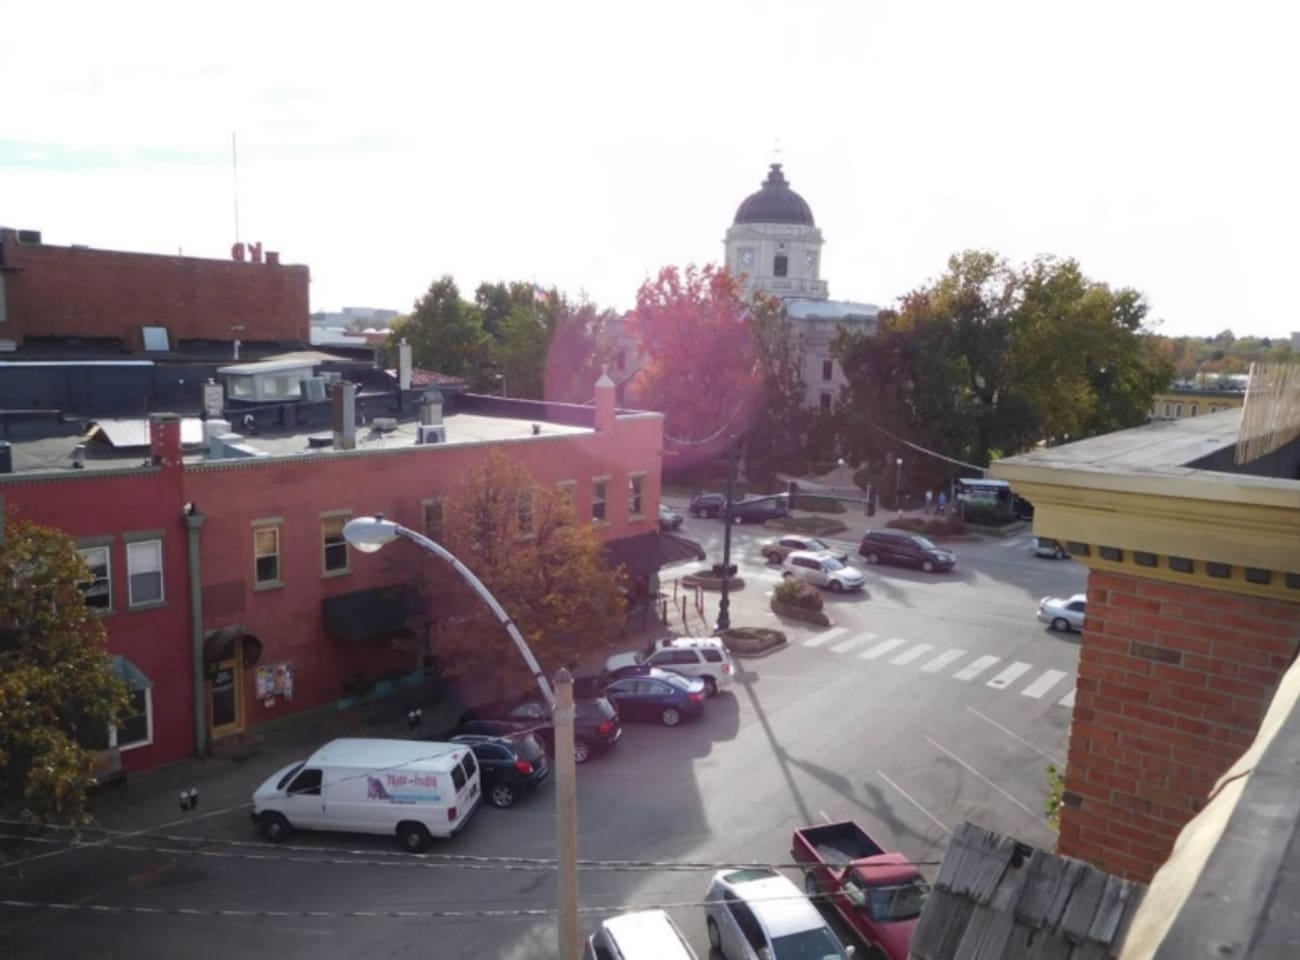 View of the courthouse square from rooftop deck - campus is also visible in the other direction.